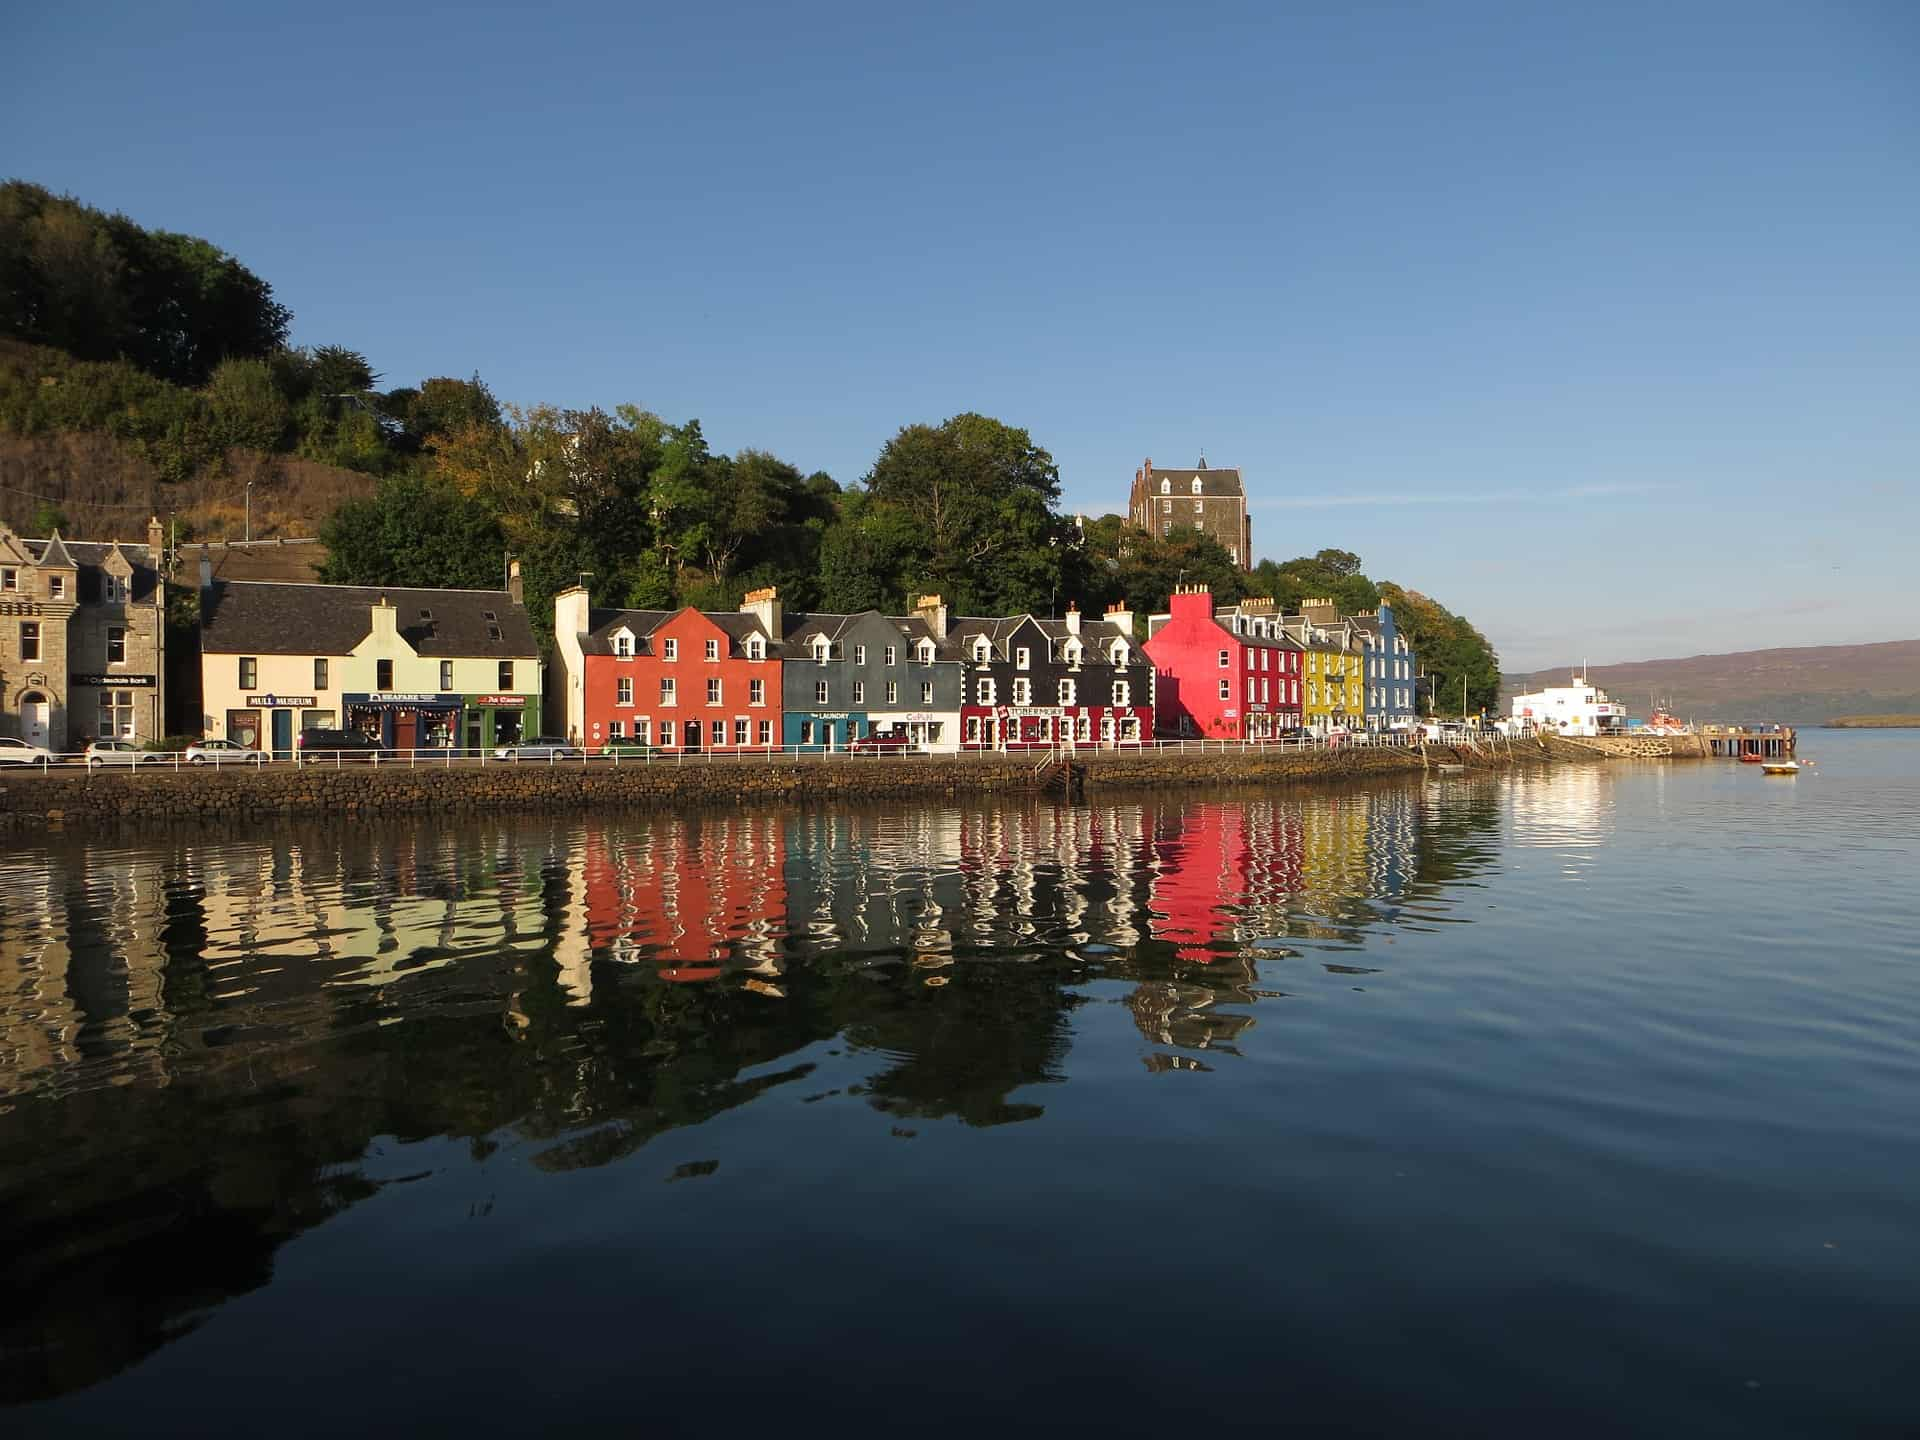 Tobermory - with its instantly recognisable painted houses